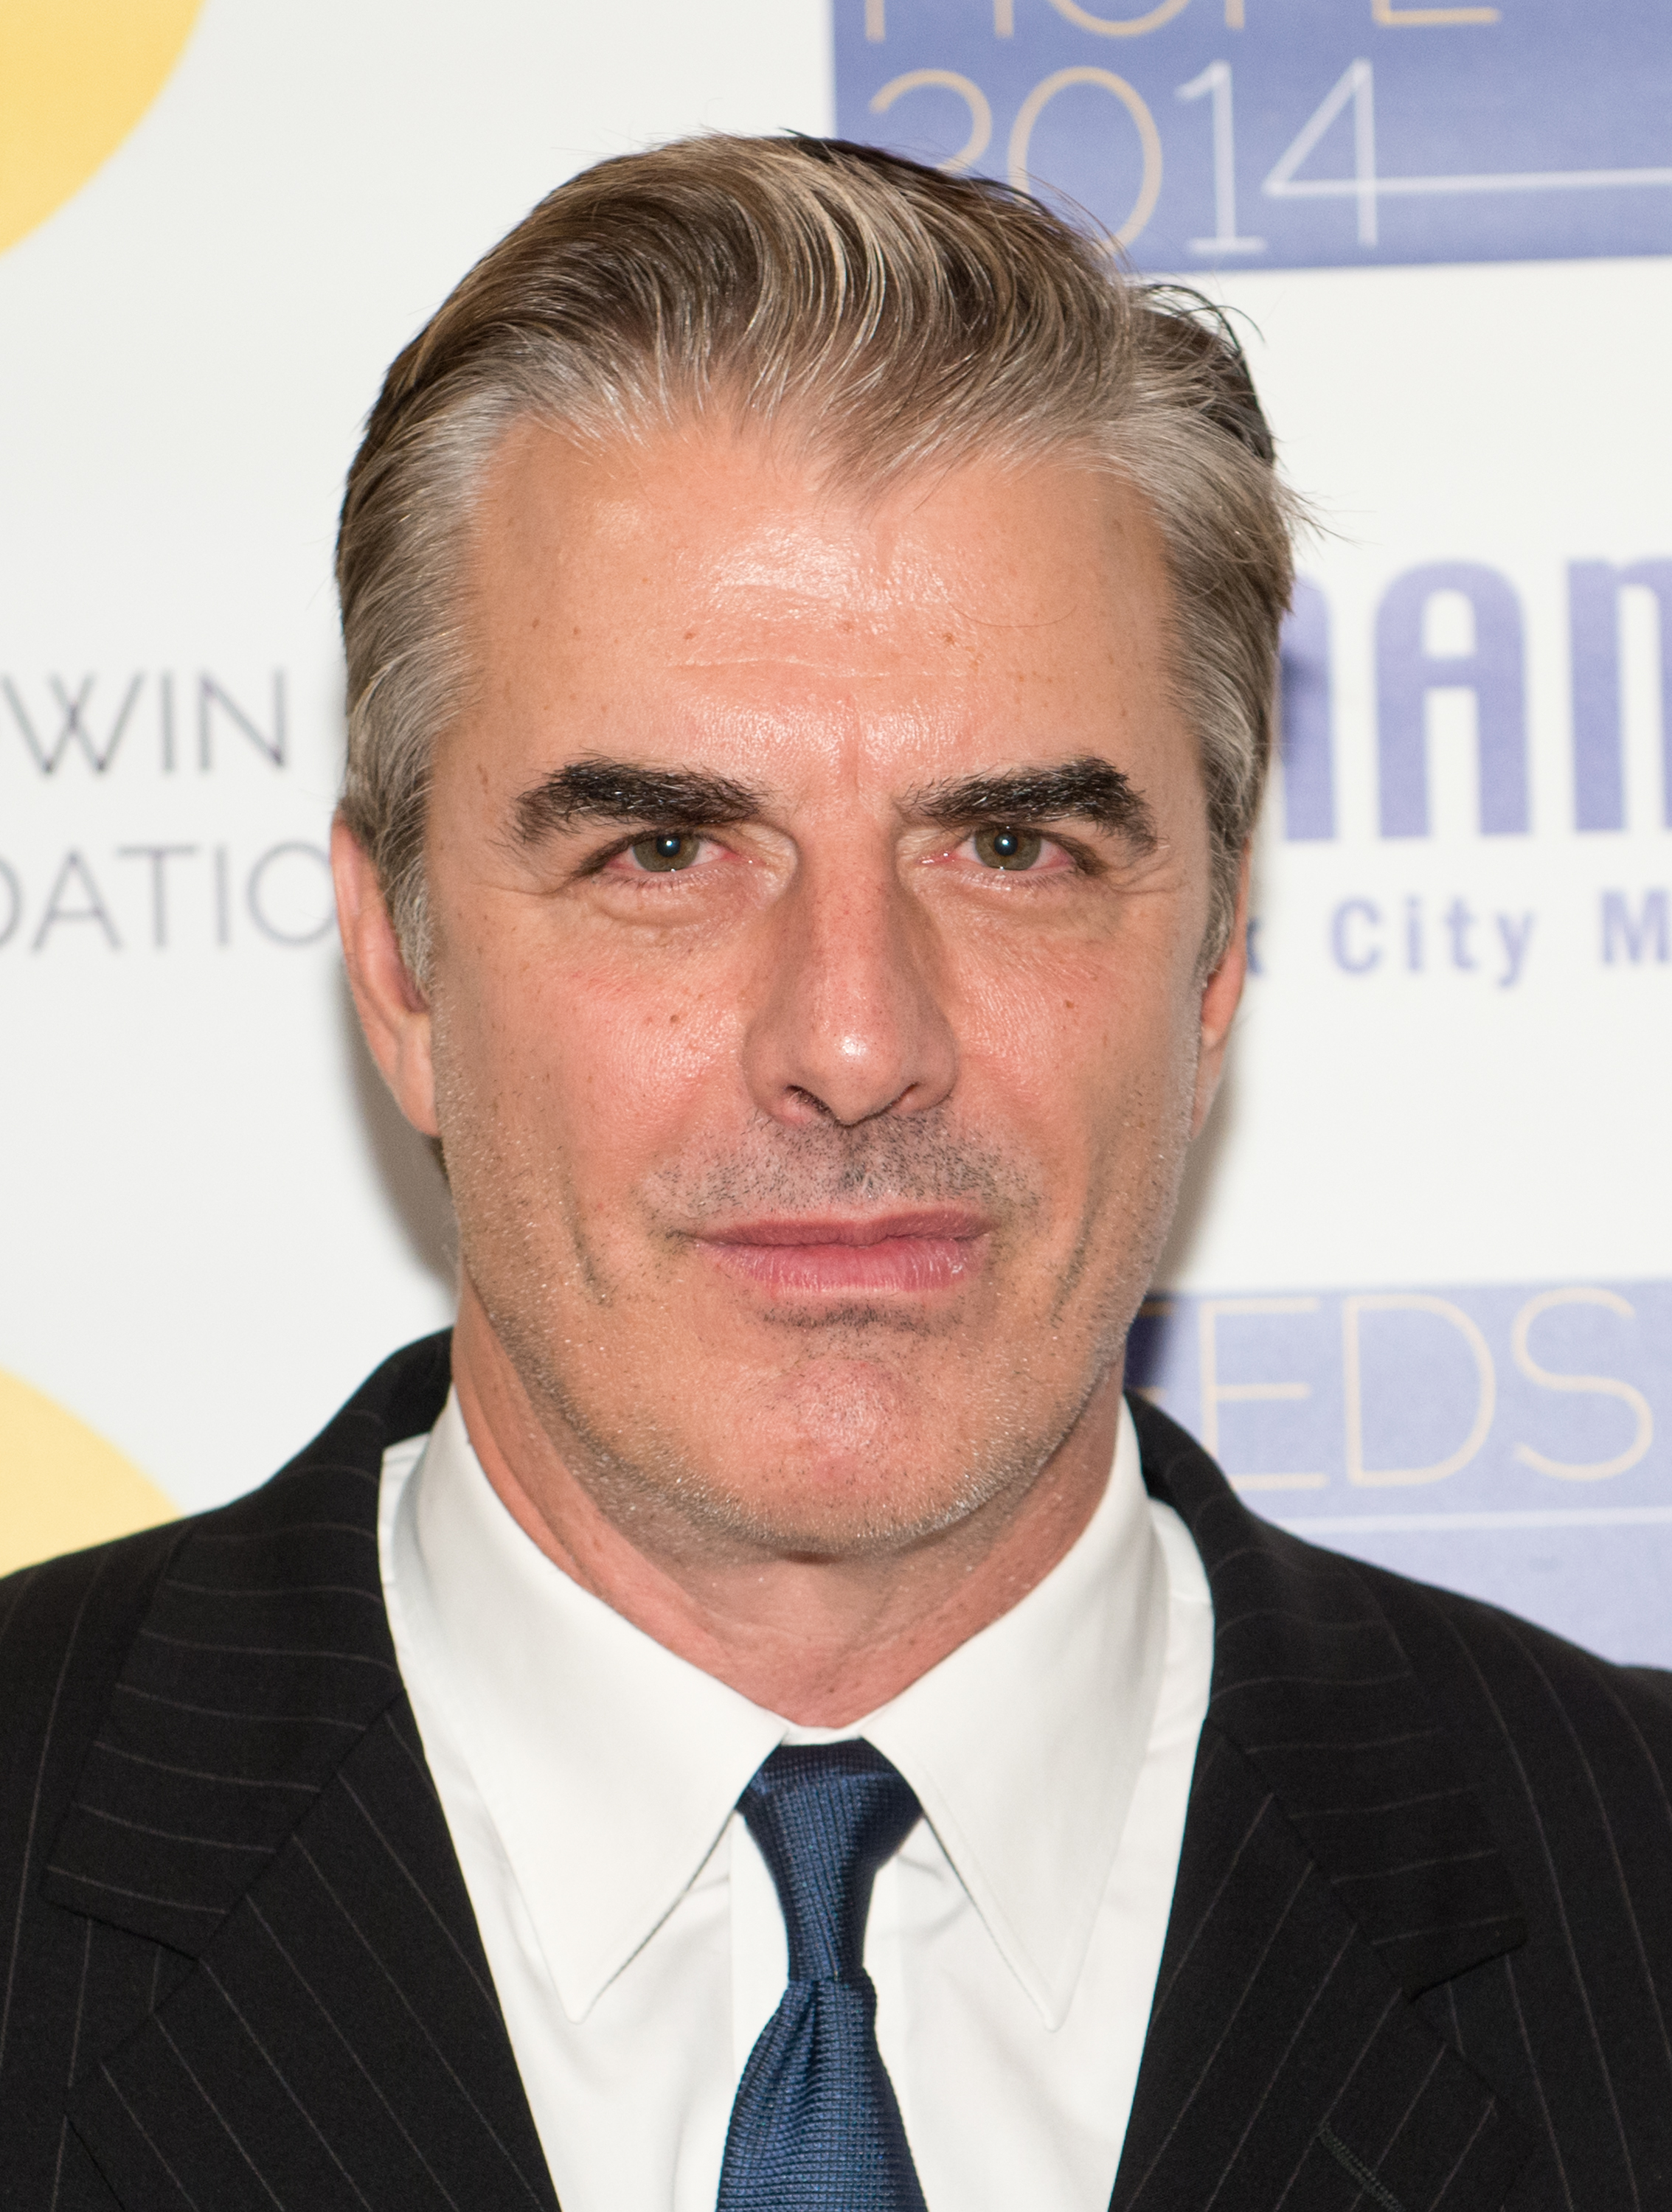 Actor Chris Noth attends the 2014 NAMI-NYC Metro Seeds Of Hope Gala at Altman Building on Nov. 6, 2014 in New York City.